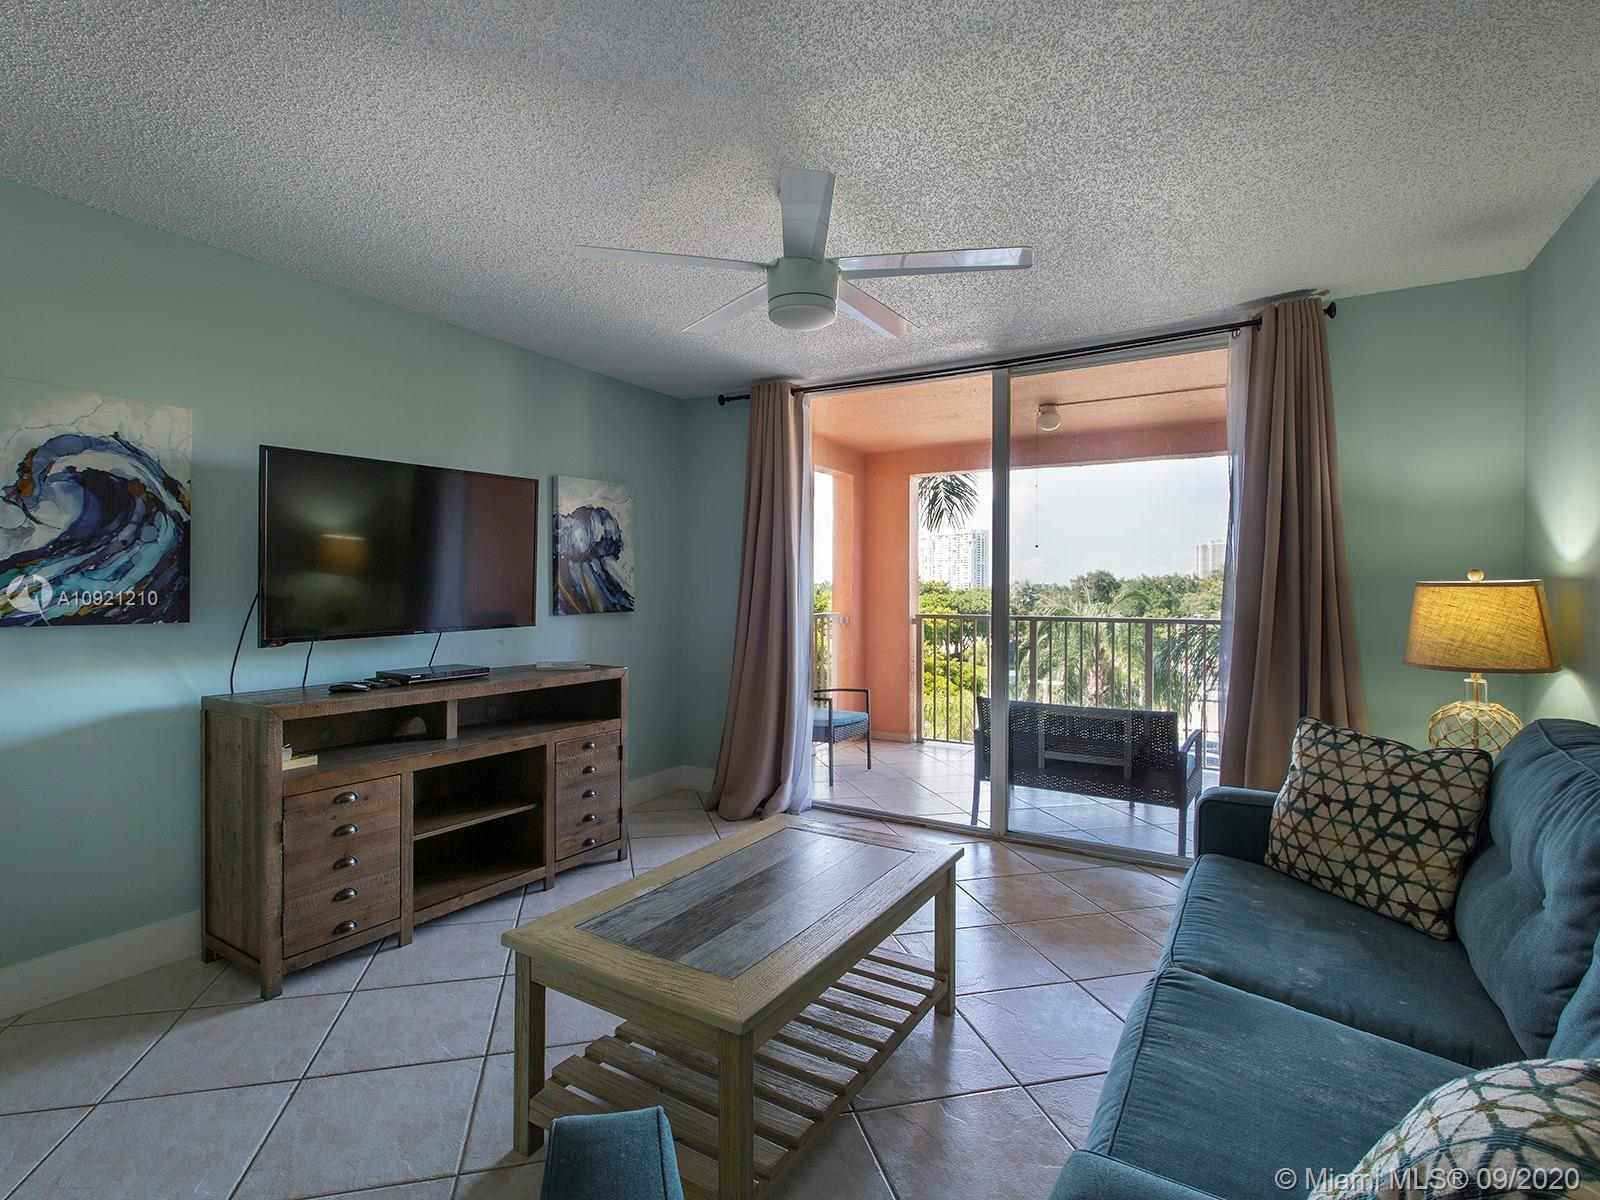 This 2/2 fully furnished turnkey apt offers a split floor plan with 2 master suites, a remodeled kit